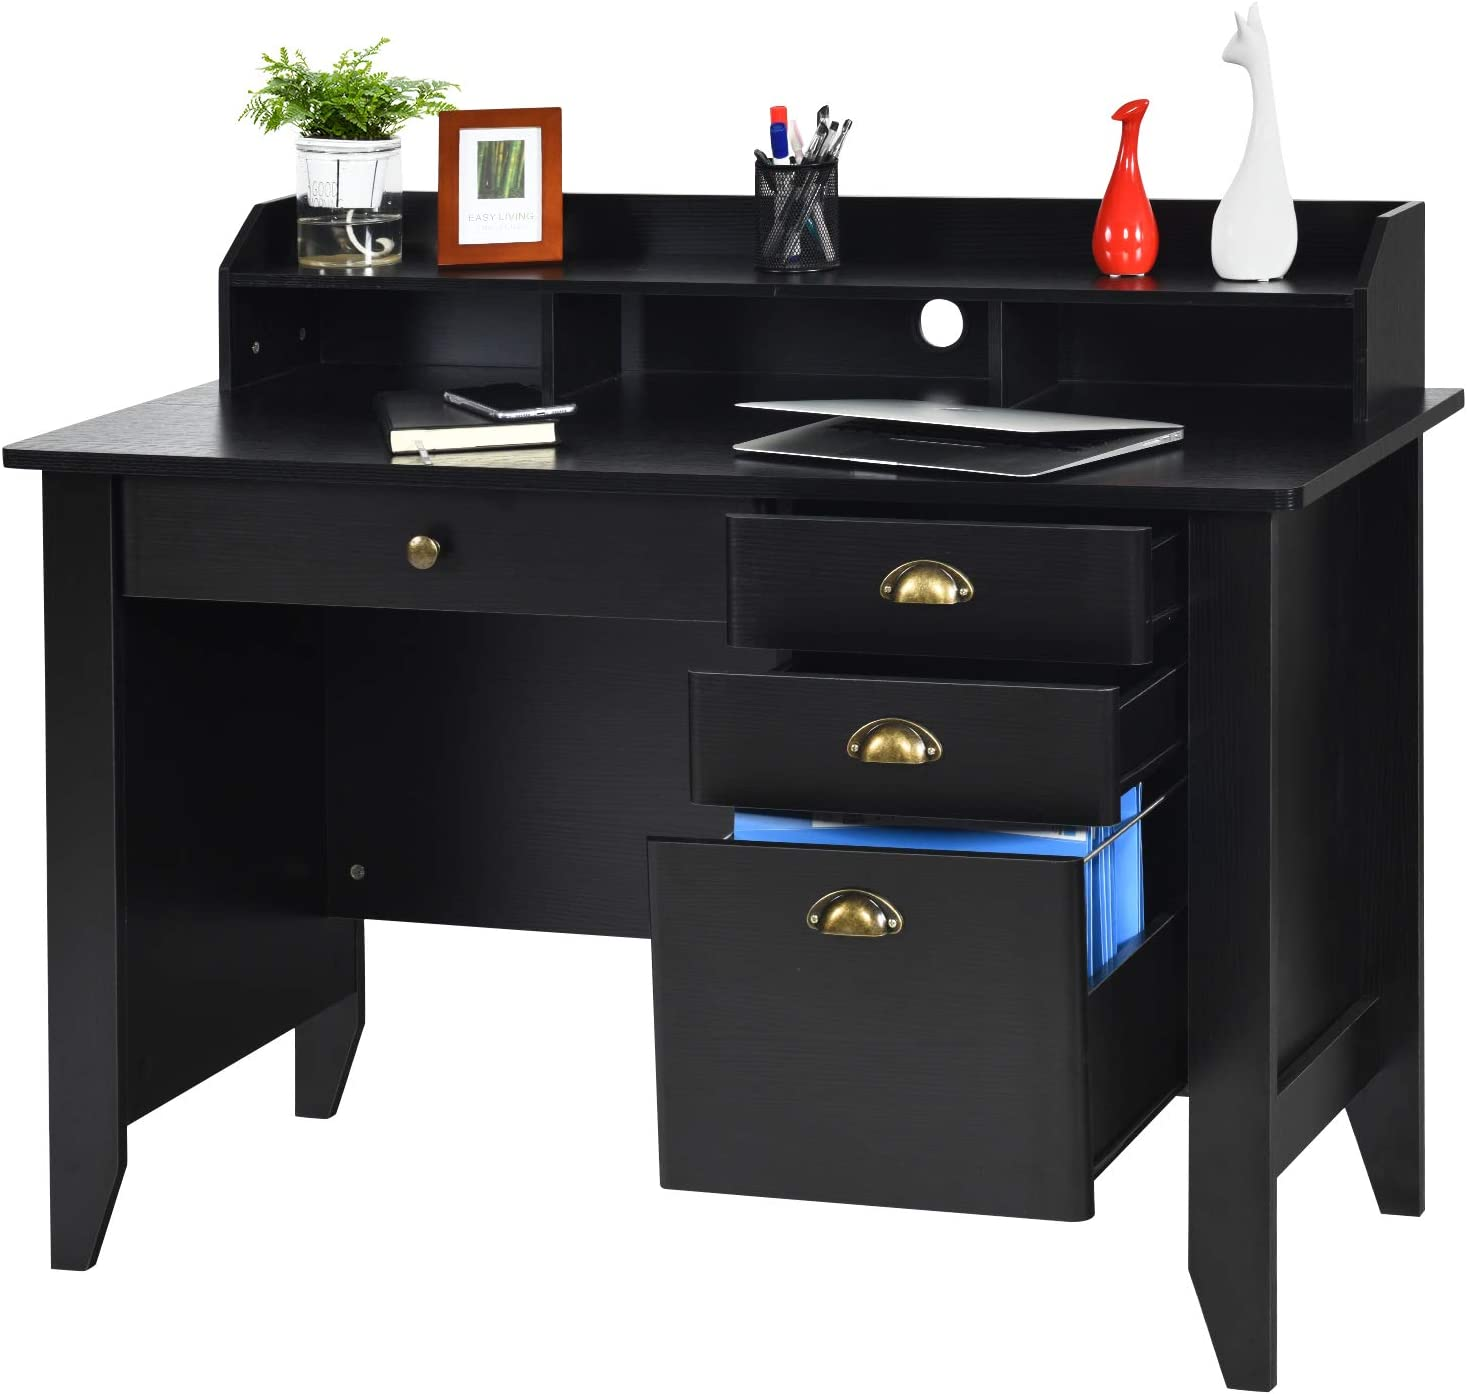 Computer Desk with 4 Drawers and Hutch Shelf, Vintage Style Writing Desk with Spacious Sturdy Desktop, Perfect Size for Home Office Apartment, with Black Wood Grain Finish